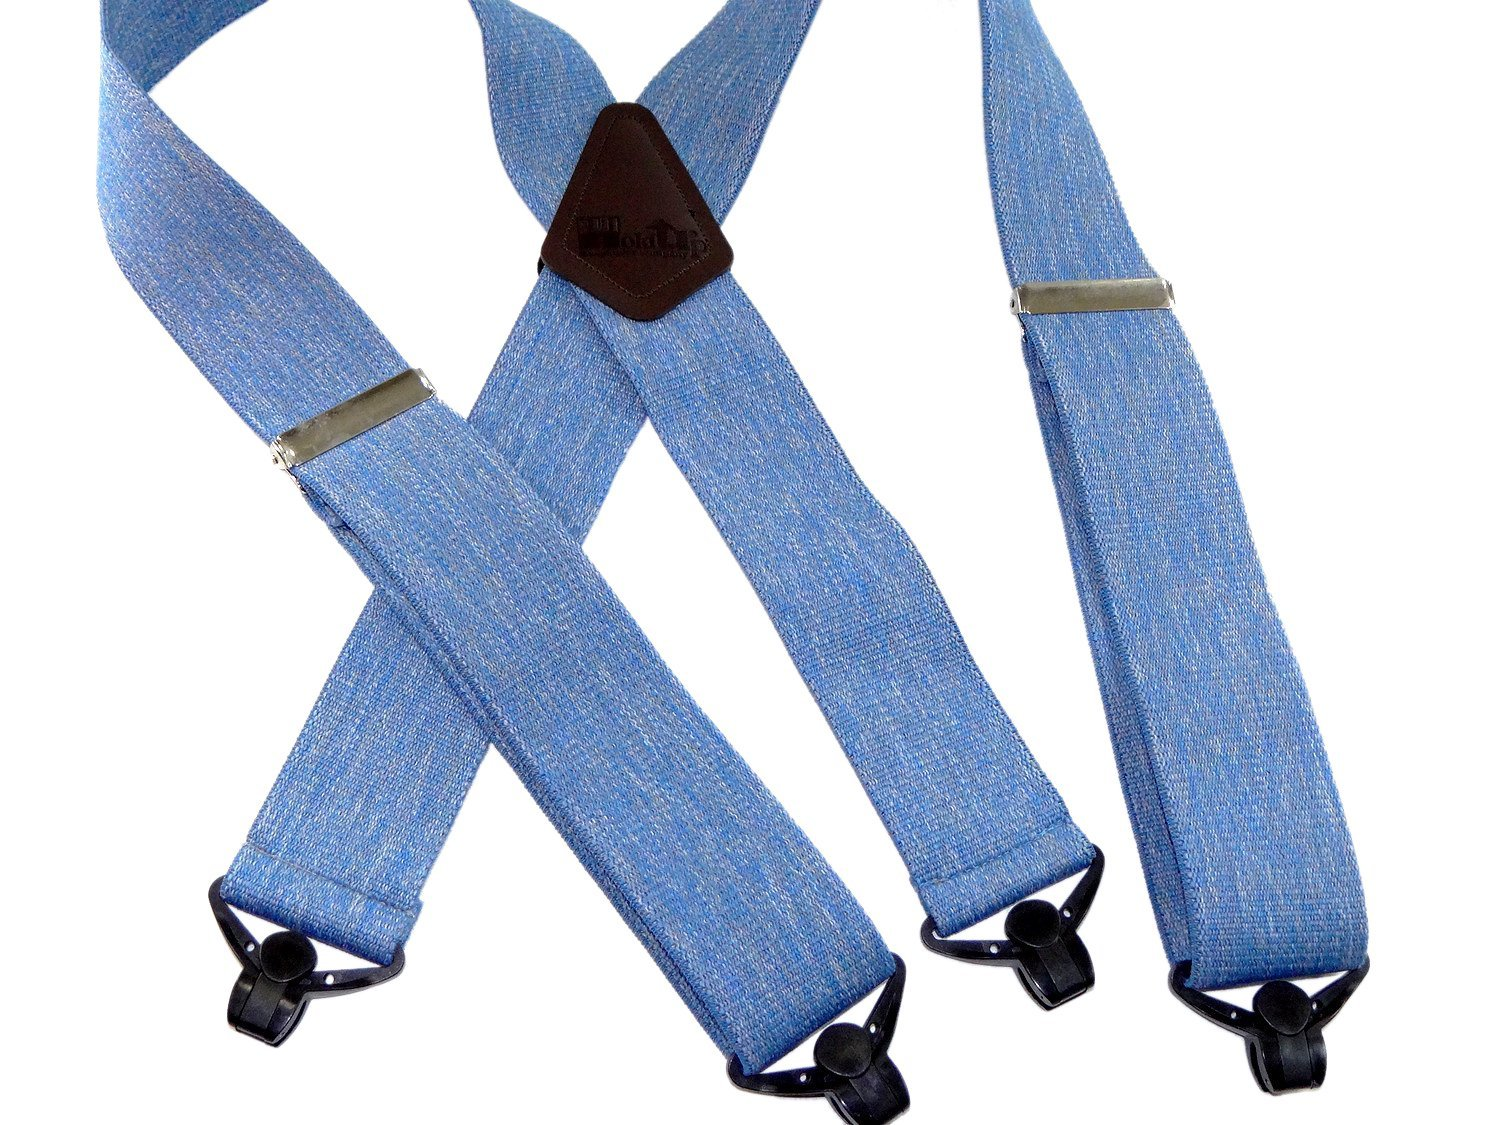 Holdup Suspender brand top quality Blue Jean colored 2'' Wide Work Suspenders with Jumbo Patented Gripper Clasps